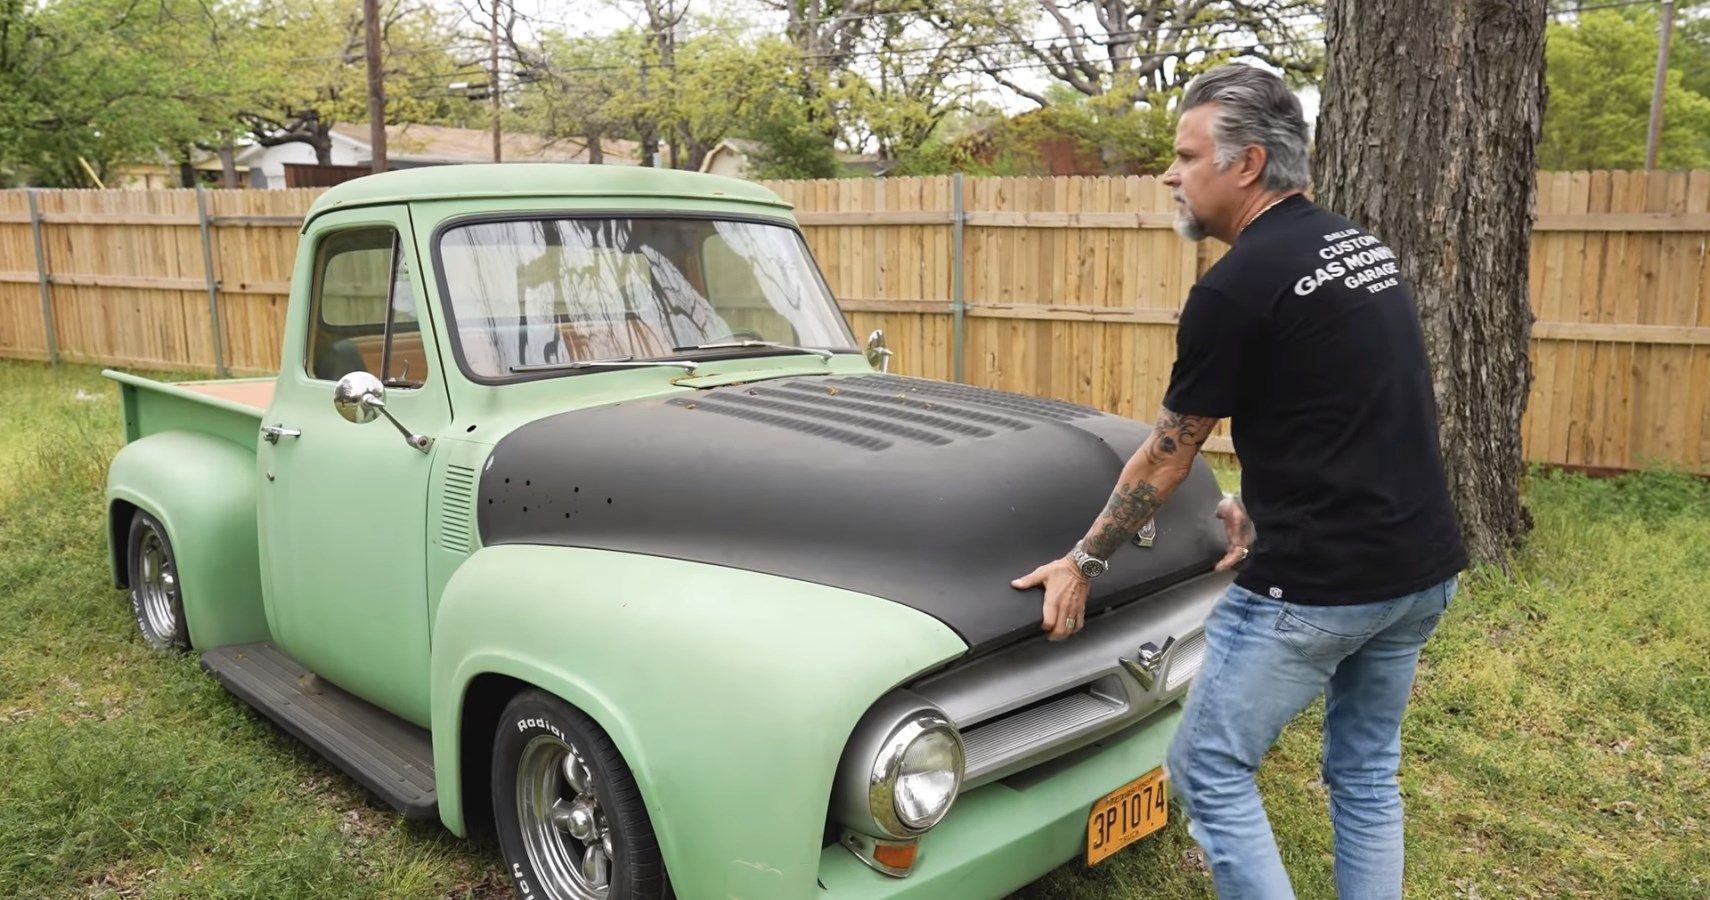 Richard Rawlings Checks Out A Field Full Of Classic Cars And Pickups